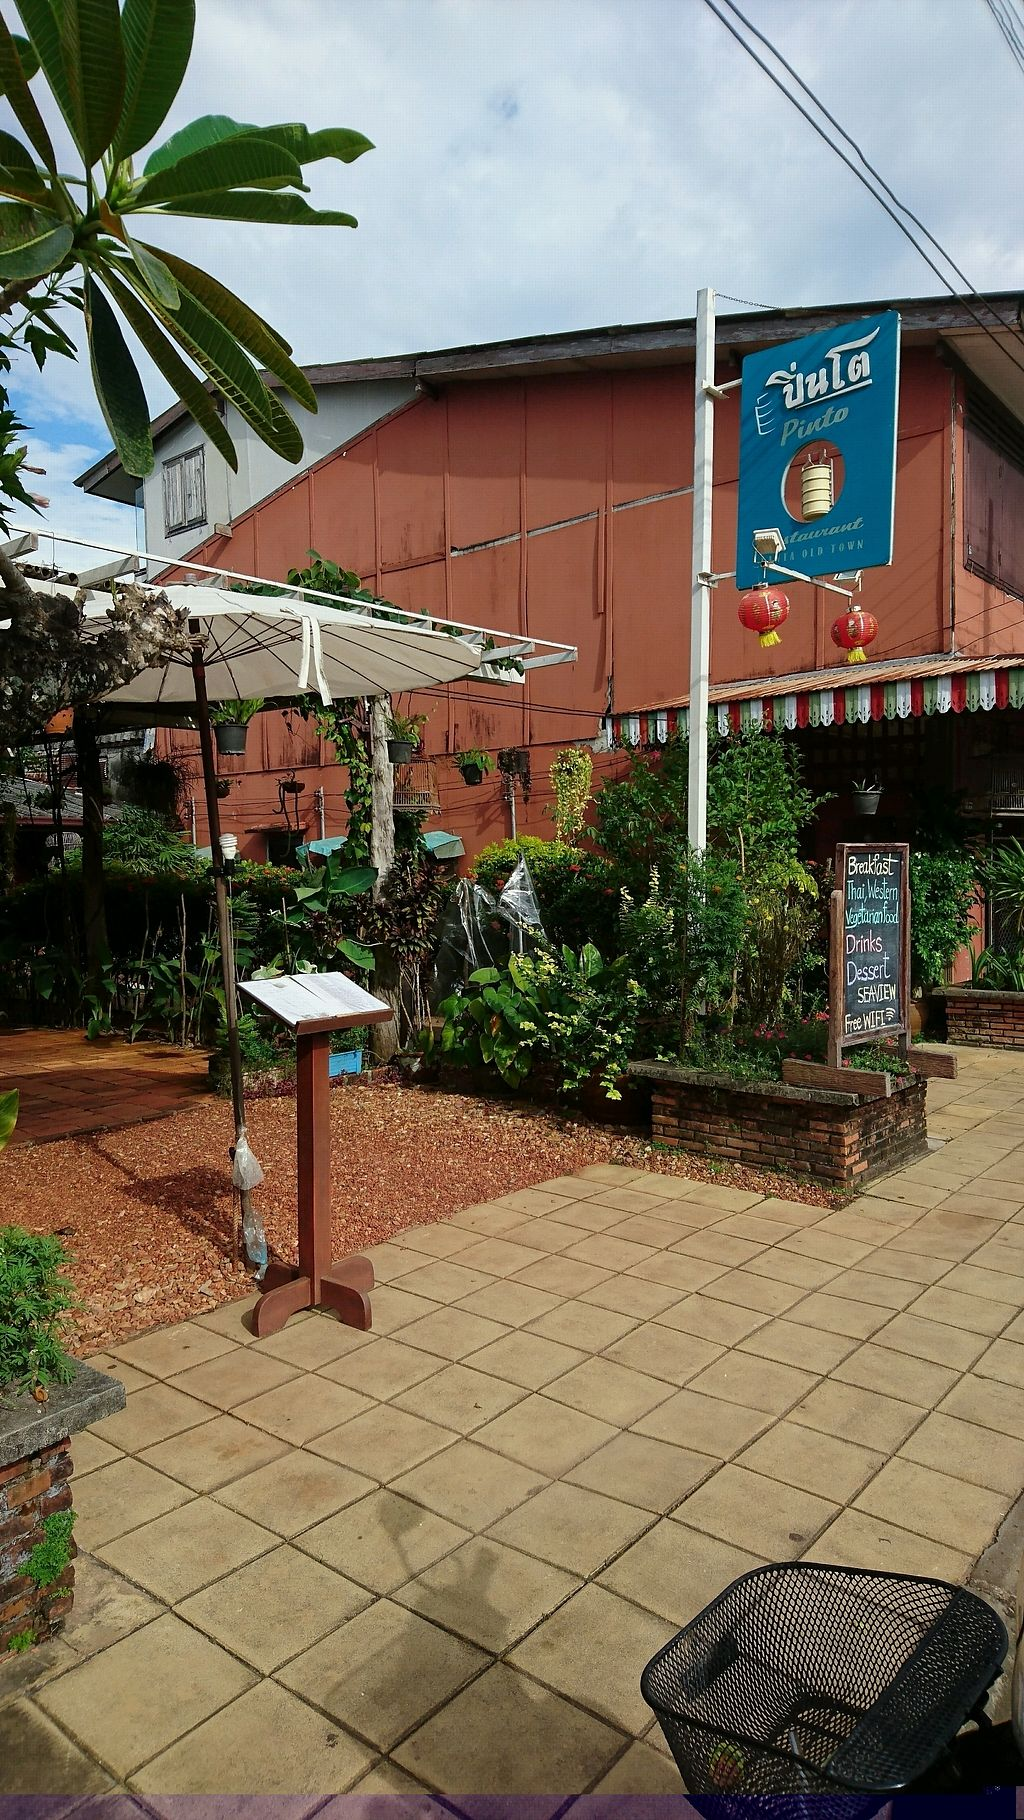 """Photo of Pinto Restaurant  by <a href=""""/members/profile/AnthonyMTL"""">AnthonyMTL</a> <br/>Pinto Restaurant <br/> December 17, 2017  - <a href='/contact/abuse/image/107357/336410'>Report</a>"""